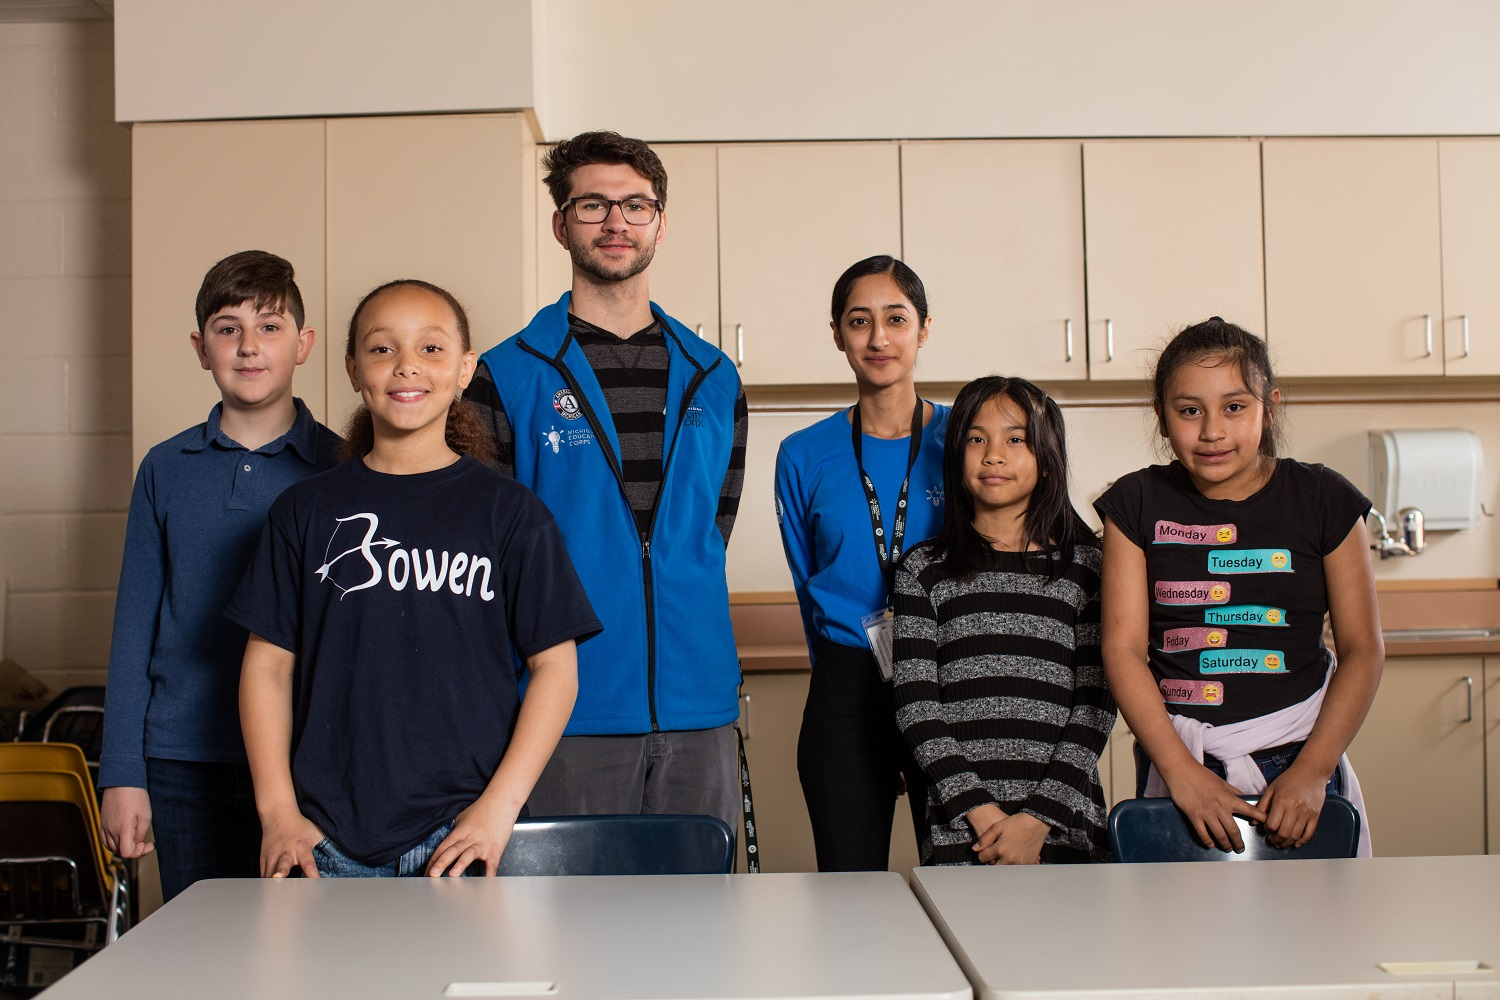 AmeriCorps members Dan Graham and Sharnjit Virk pose with students from Bowen Elementary.